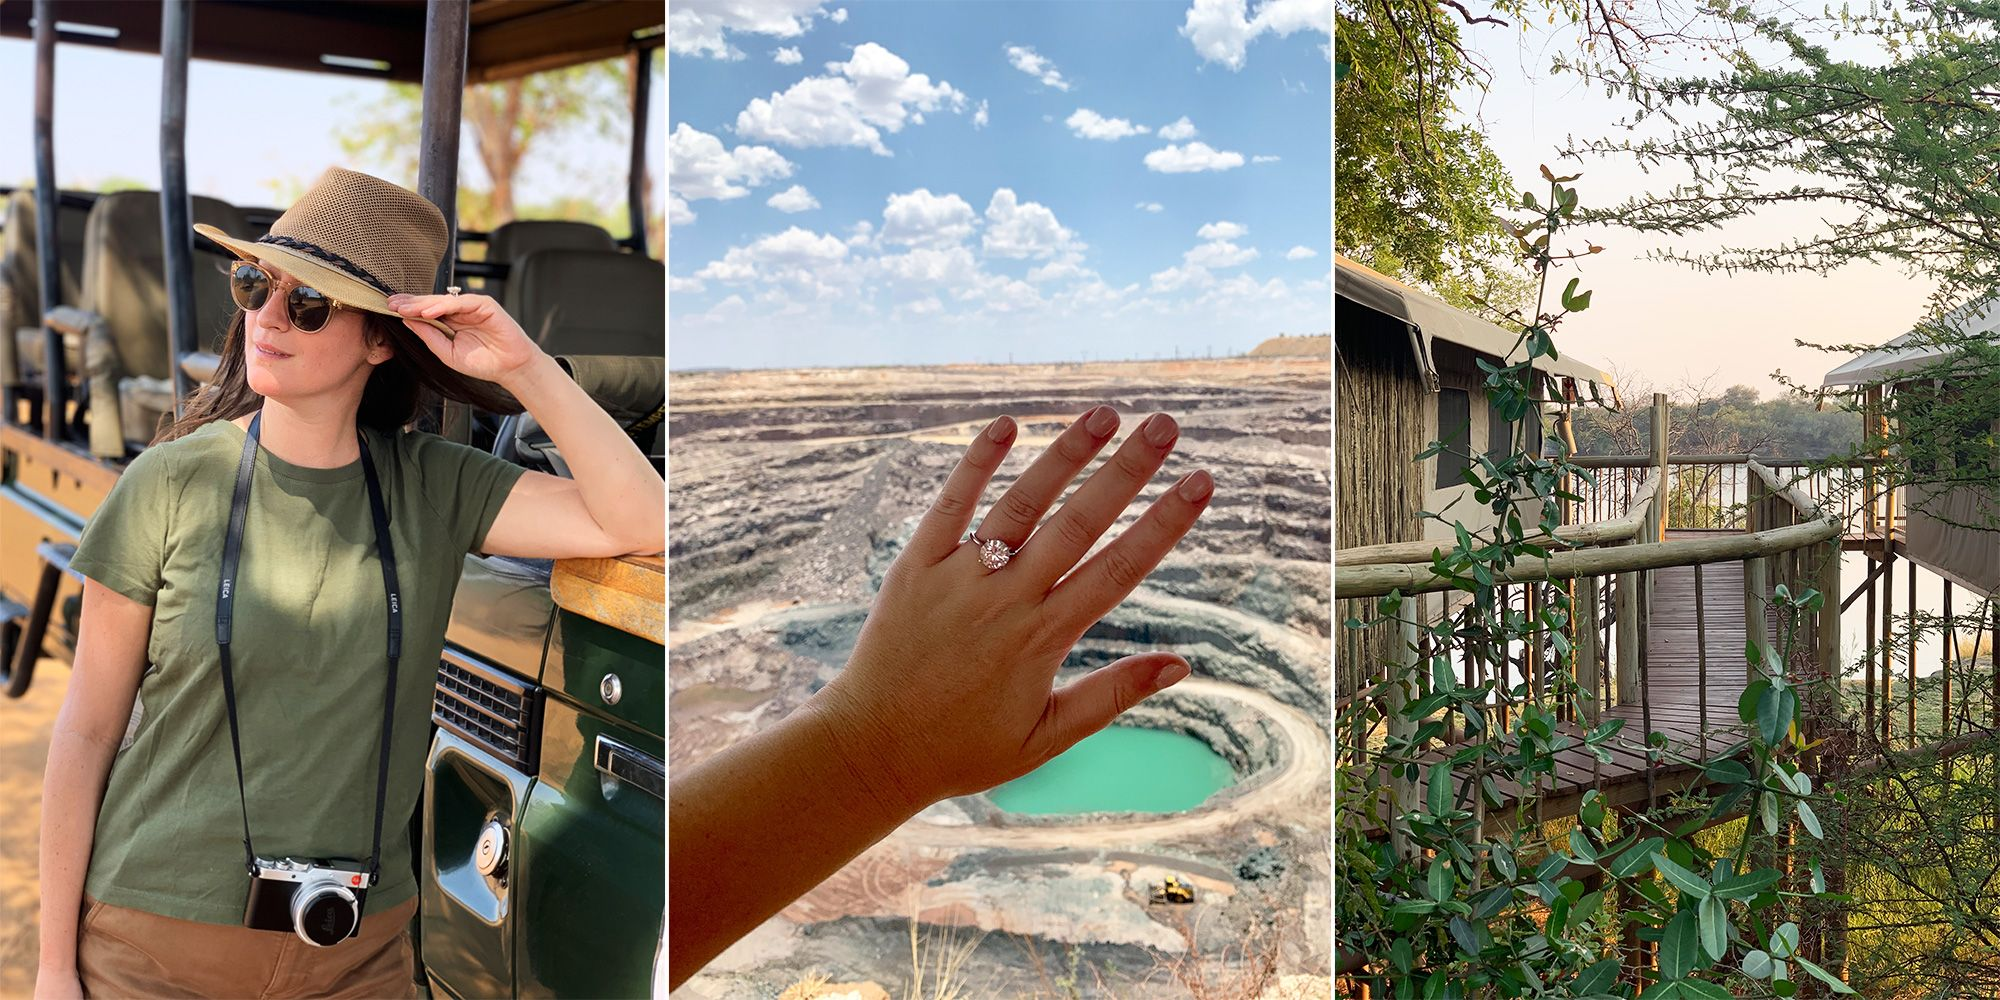 This Hollywood Stylist Traveled to Africa to See How Diamonds Are Recovered Firsthand